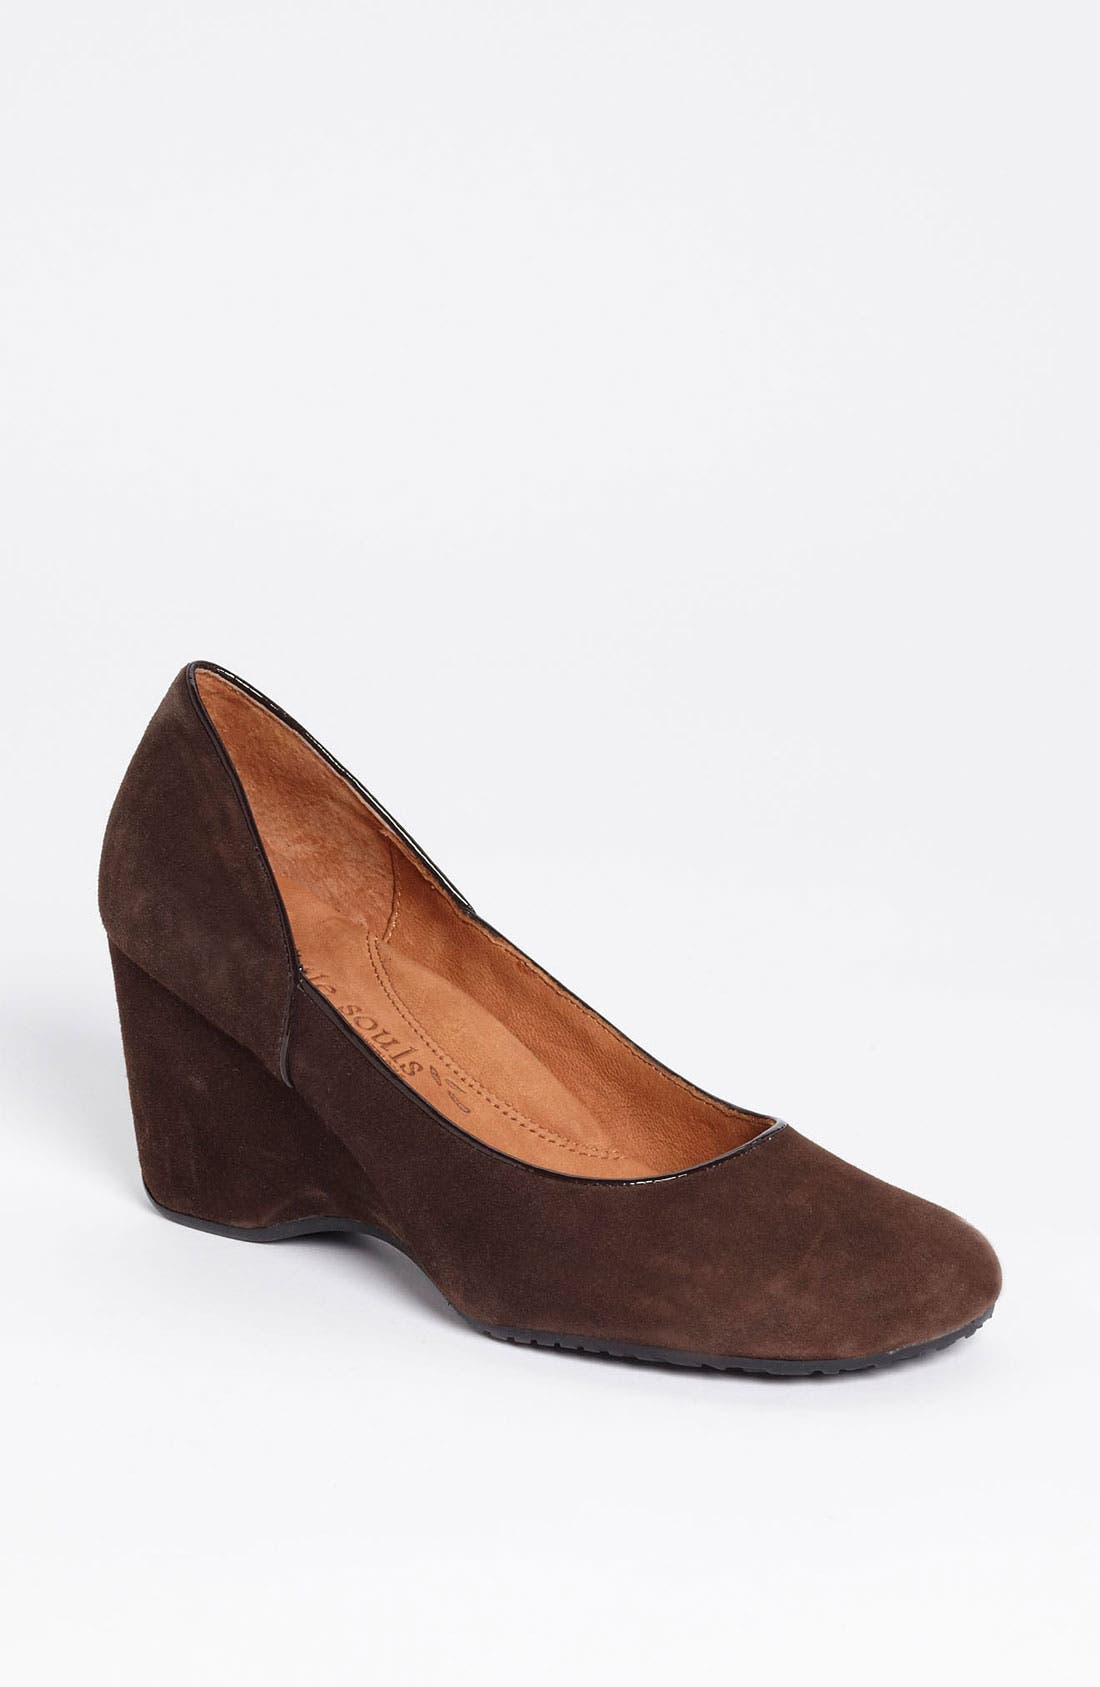 Main Image - Gentle Souls 'Ridge Amaru' Wedge